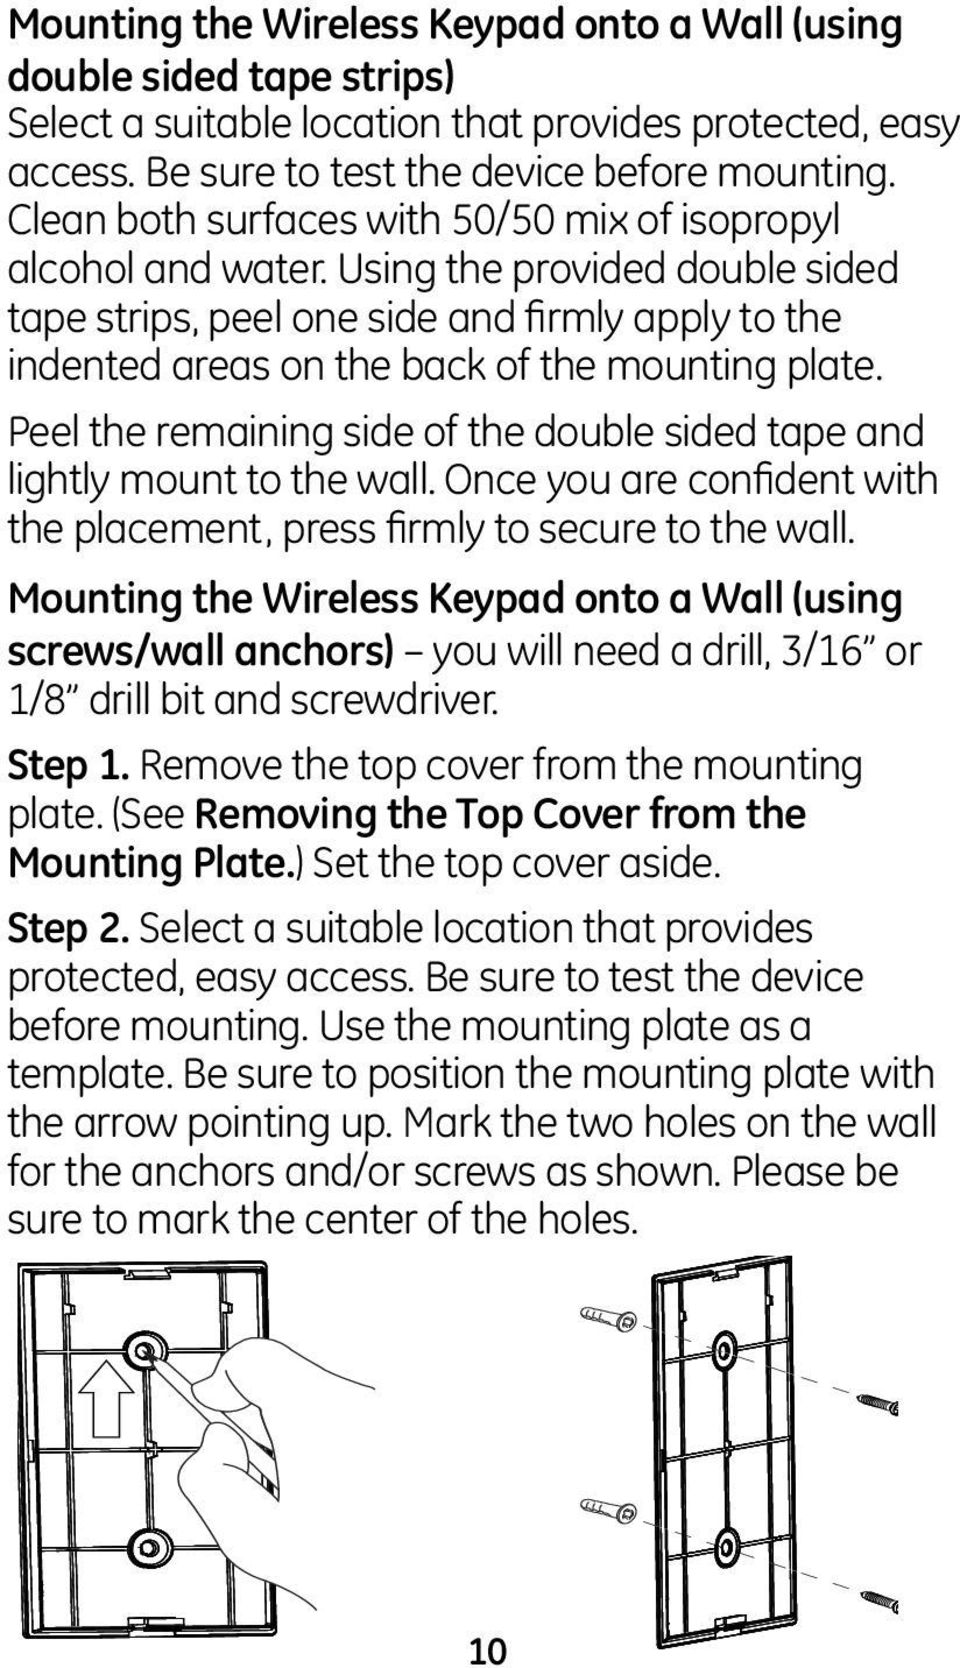 Peel the remaining side of the double sided tape and lightly mount to the wall. Once you are confident with the placement, press firmly to secure to the wall.